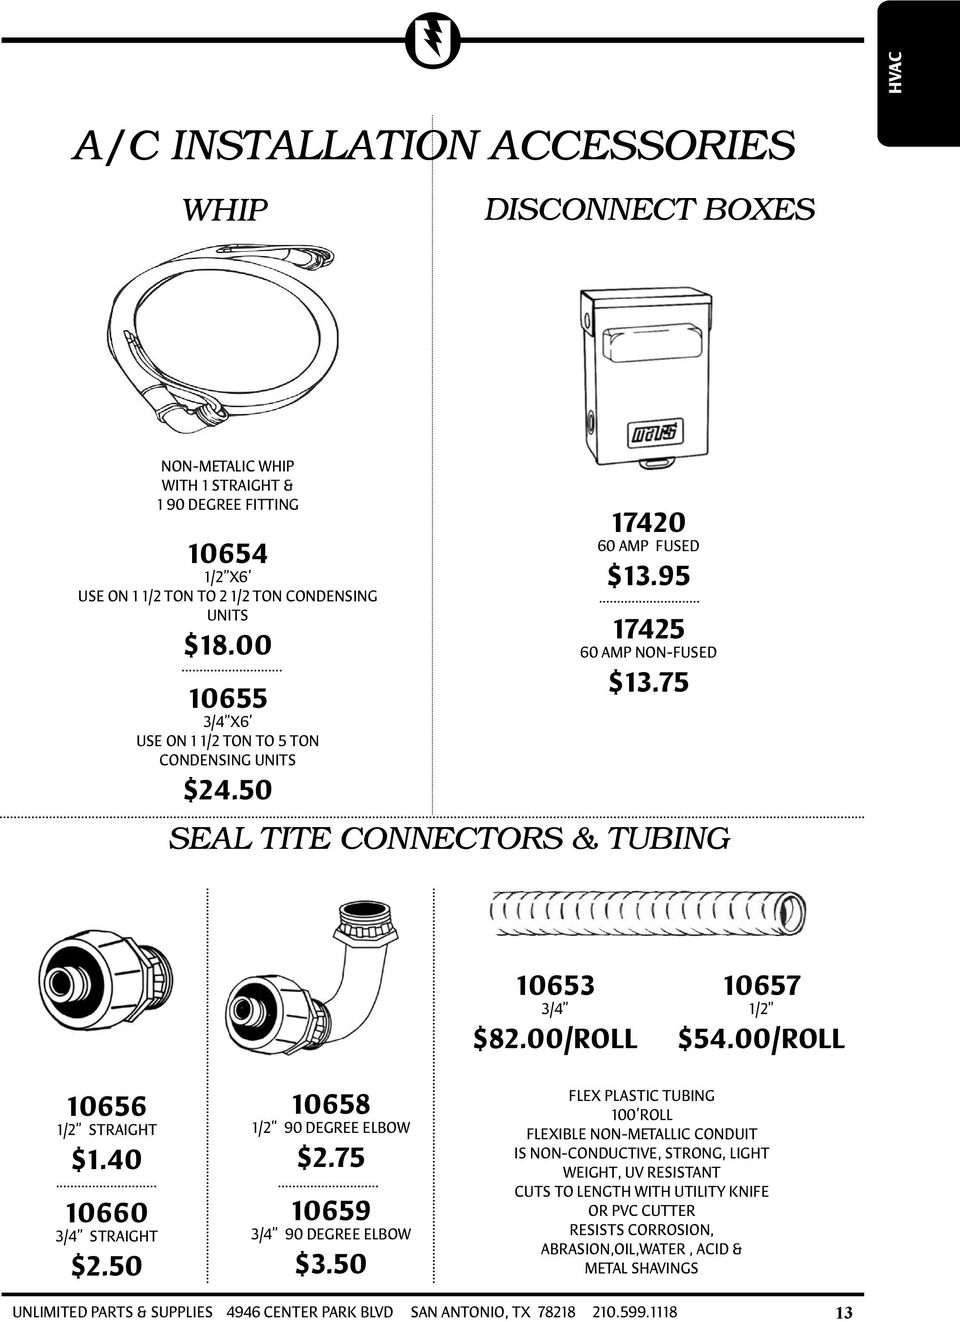 hvac table of contents pdf 00 roll 10656 1 2 straight 1 40 10660 3 4 straight 2 50 10658